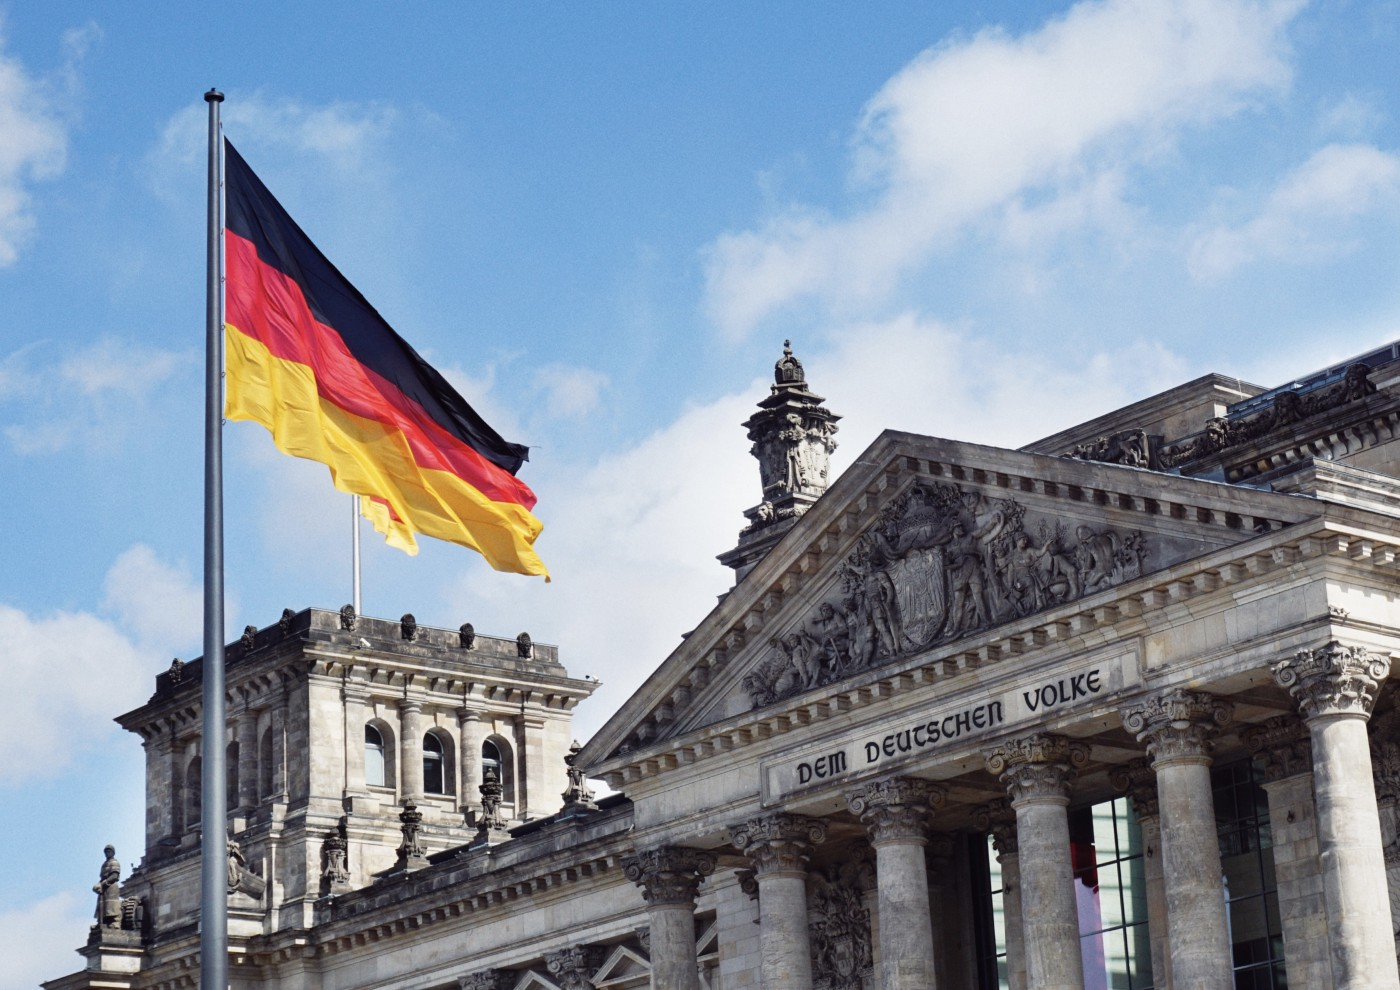 An image of the German Bundestag building with a German flag in front of it.